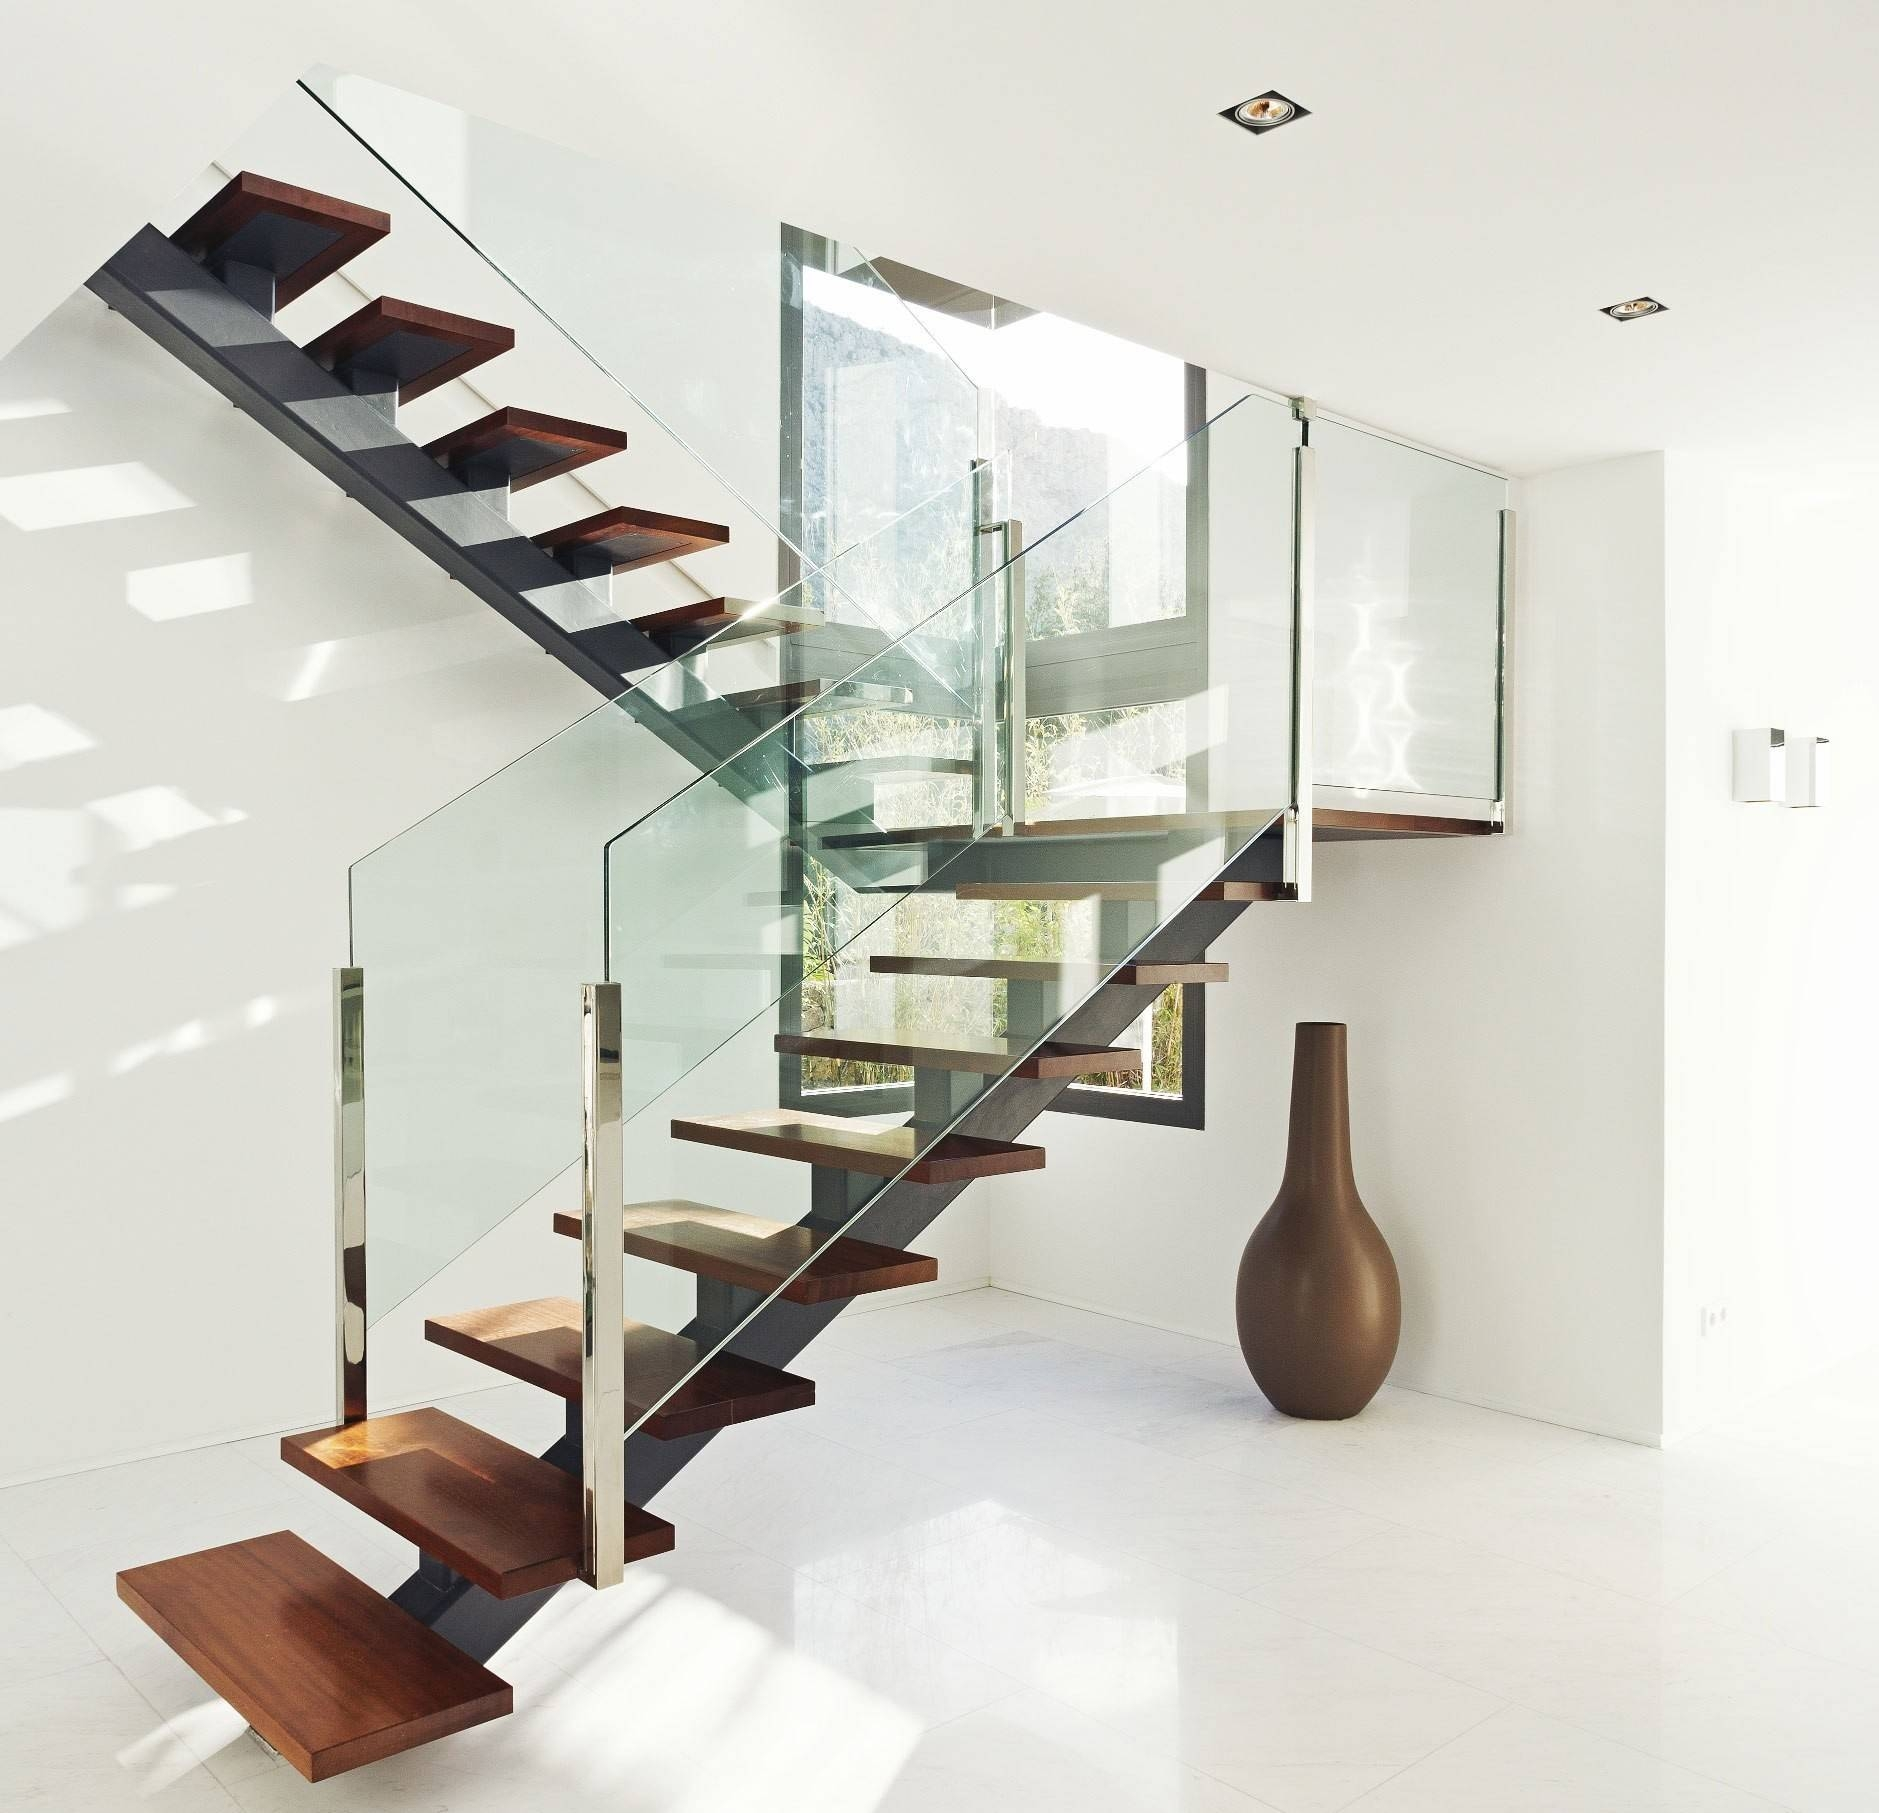 Wood Glass Staircase Designs 22 Photo Gallery Little Big Adventure   Staircase Design Wood Glass   Dark Wood   Modern Style Glass Railing   Spiral   Before And After   Timber